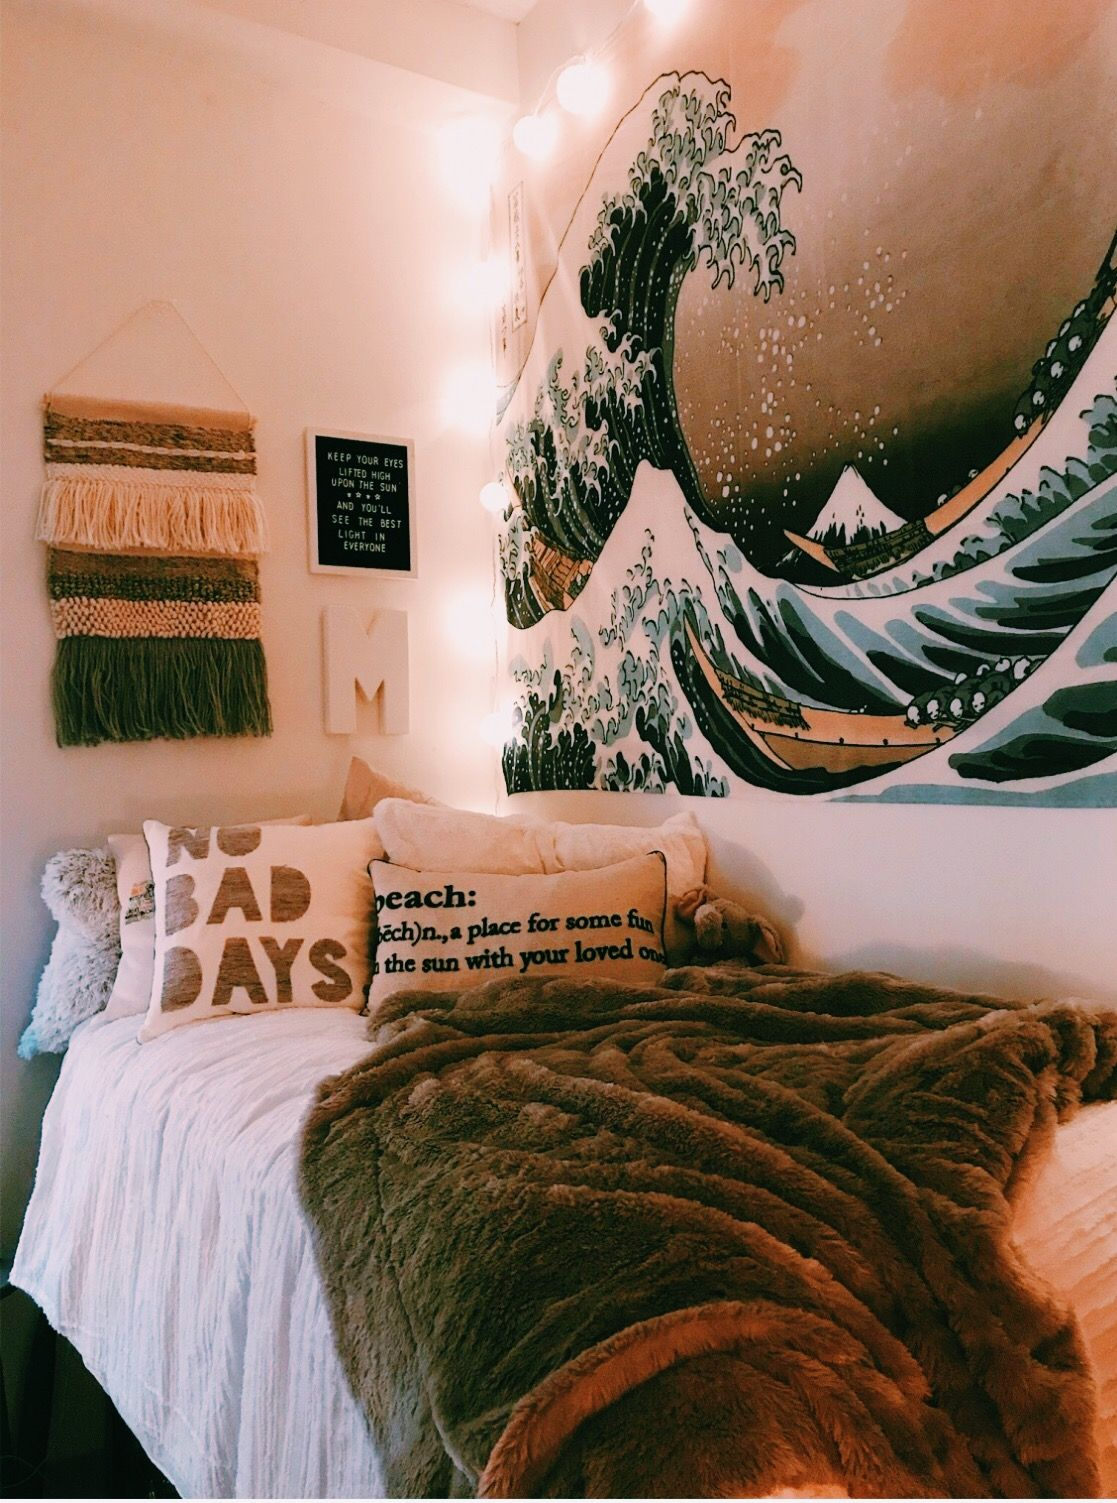 Pinterest Carolinefaith417 Dorm Room Decor Room Inspiration Dream Rooms